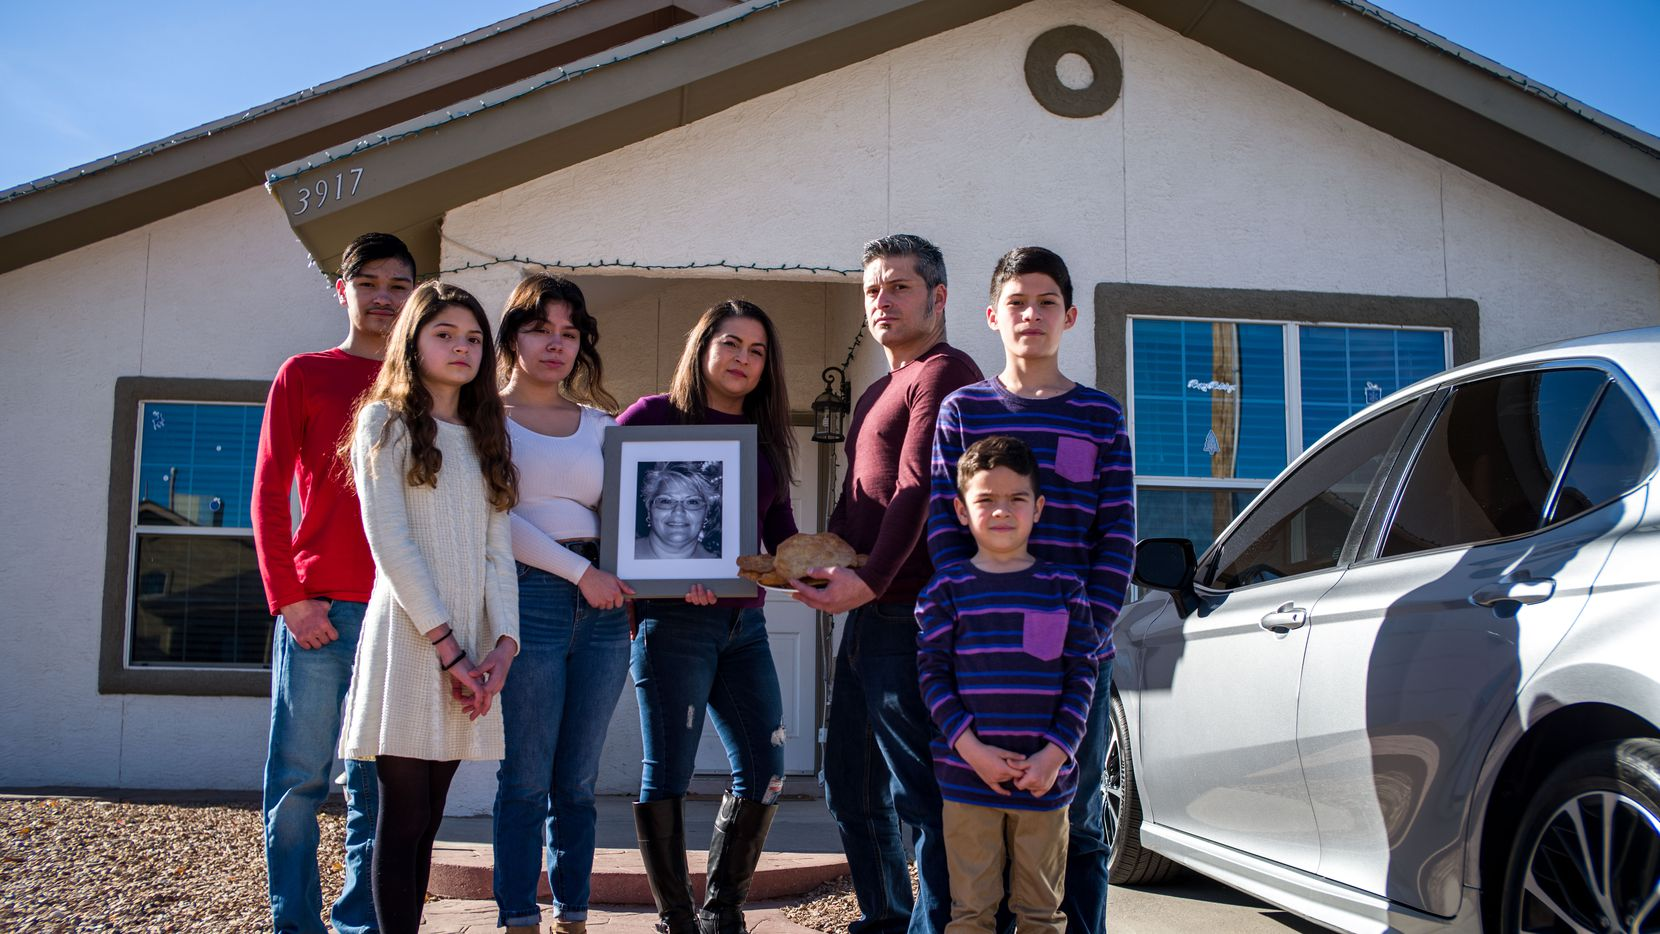 Christopher Martínez, 13, his sister Maya Martínez, 12, cousin Jasmine Martínez, 19, mother Muriel Martínez, 33, father Armando Martínez, 35, brother Sebastian Martínez, 5, and cousin Diego Martínez, 13, pose for a portrait outside their home as they gather around a photograph of Christopher's grandmother Maria Oralia Lugo, 56, in El Paso on Dec., 17, 2020. Maria Oralia Lugo and two other relatives died of COVID-19 in November.